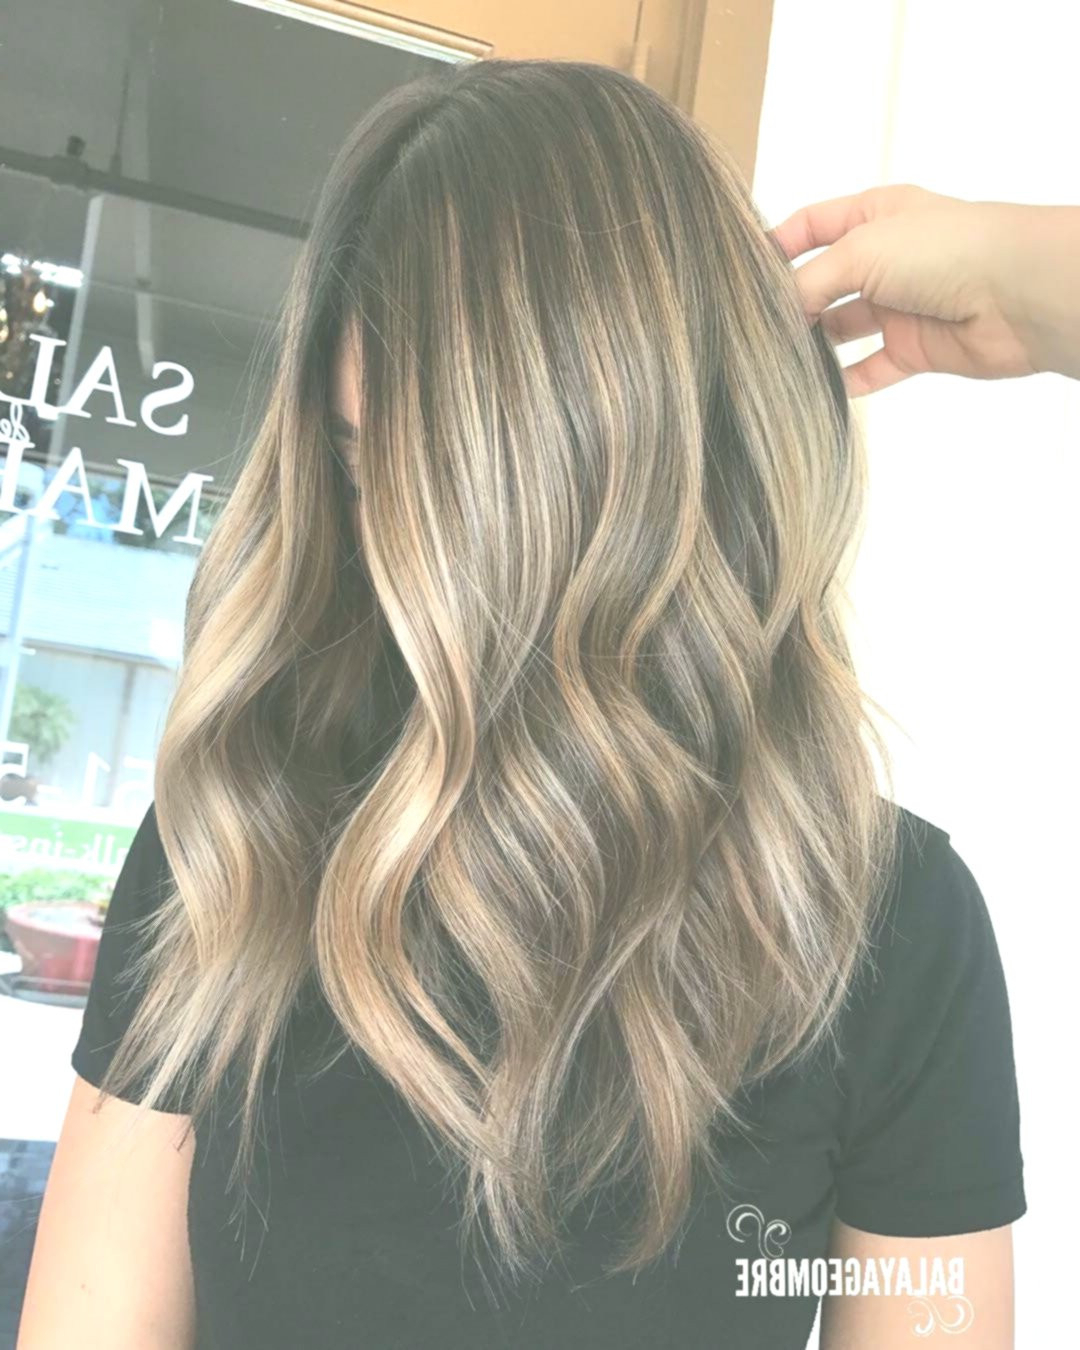 Medium Length Layered Hairstyles For Thick Hair 2019 10 Throughout 2017 Mid Length Layered Ash Blonde Hairstyles (View 14 of 20)